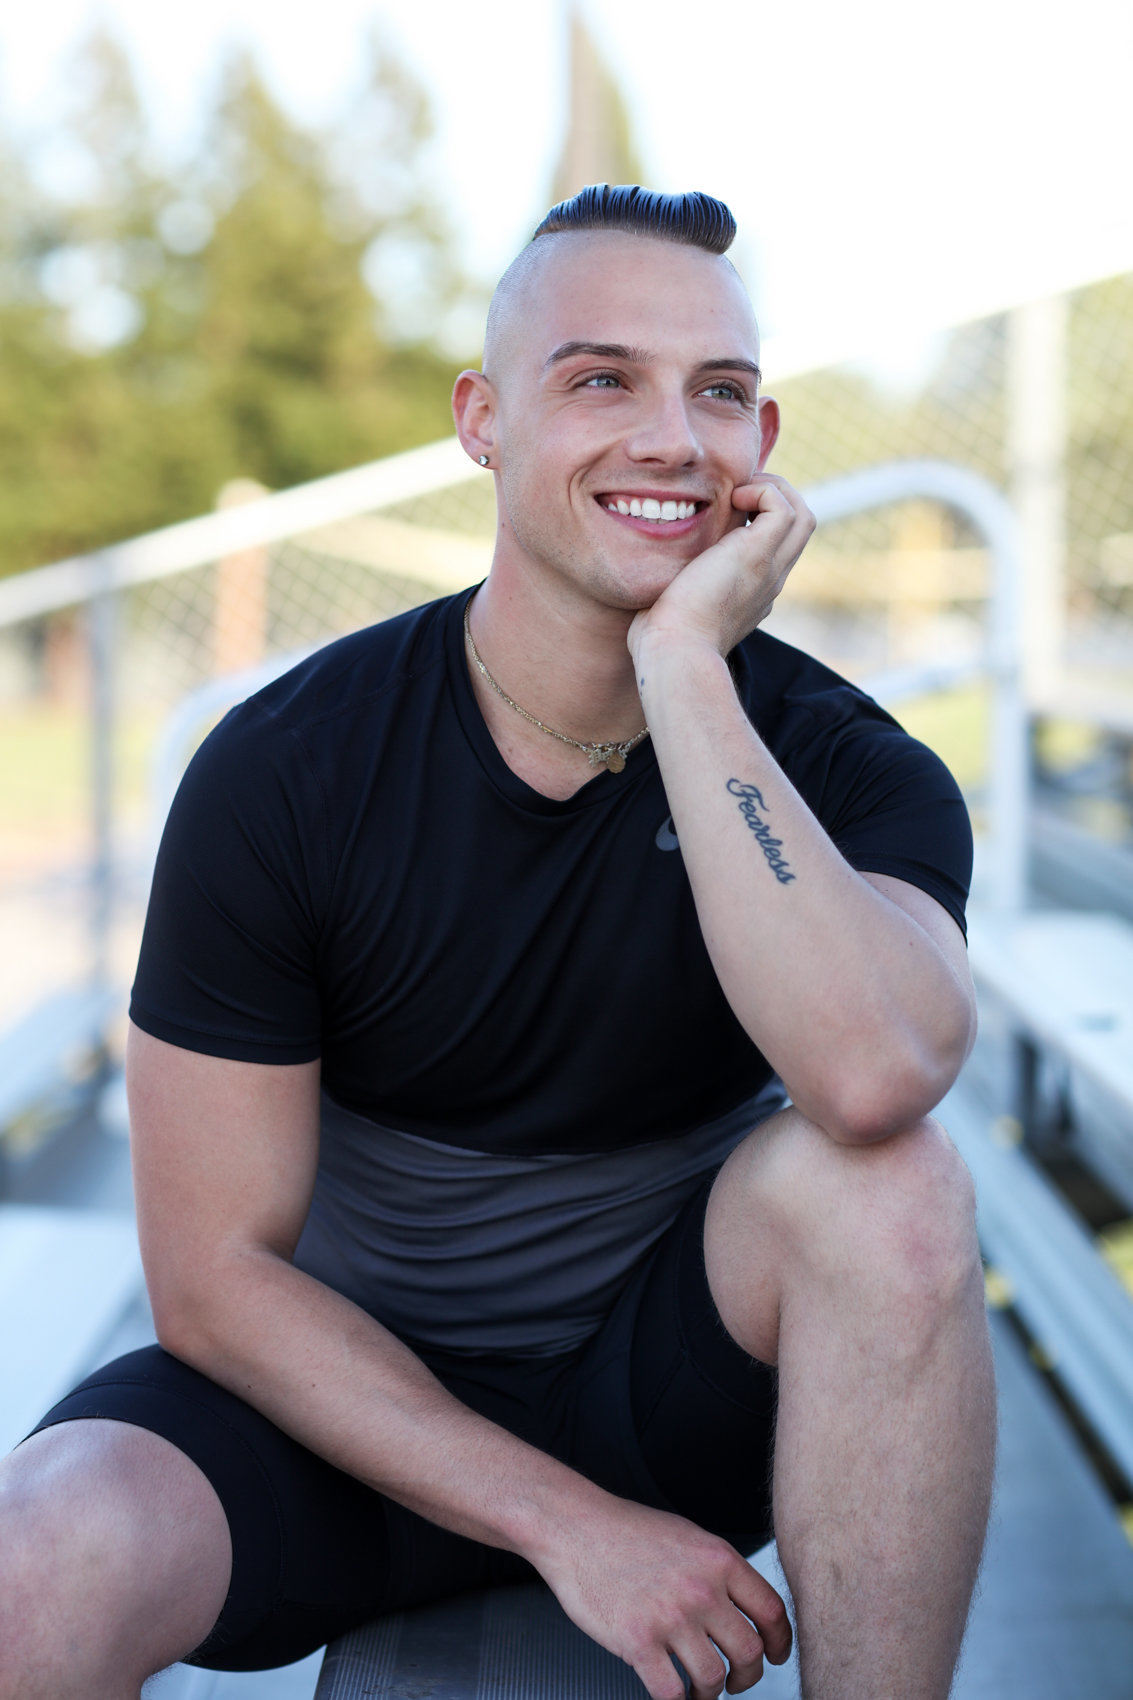 Fitness Photos on Bleachers, Personal Trainer in the Bay Area